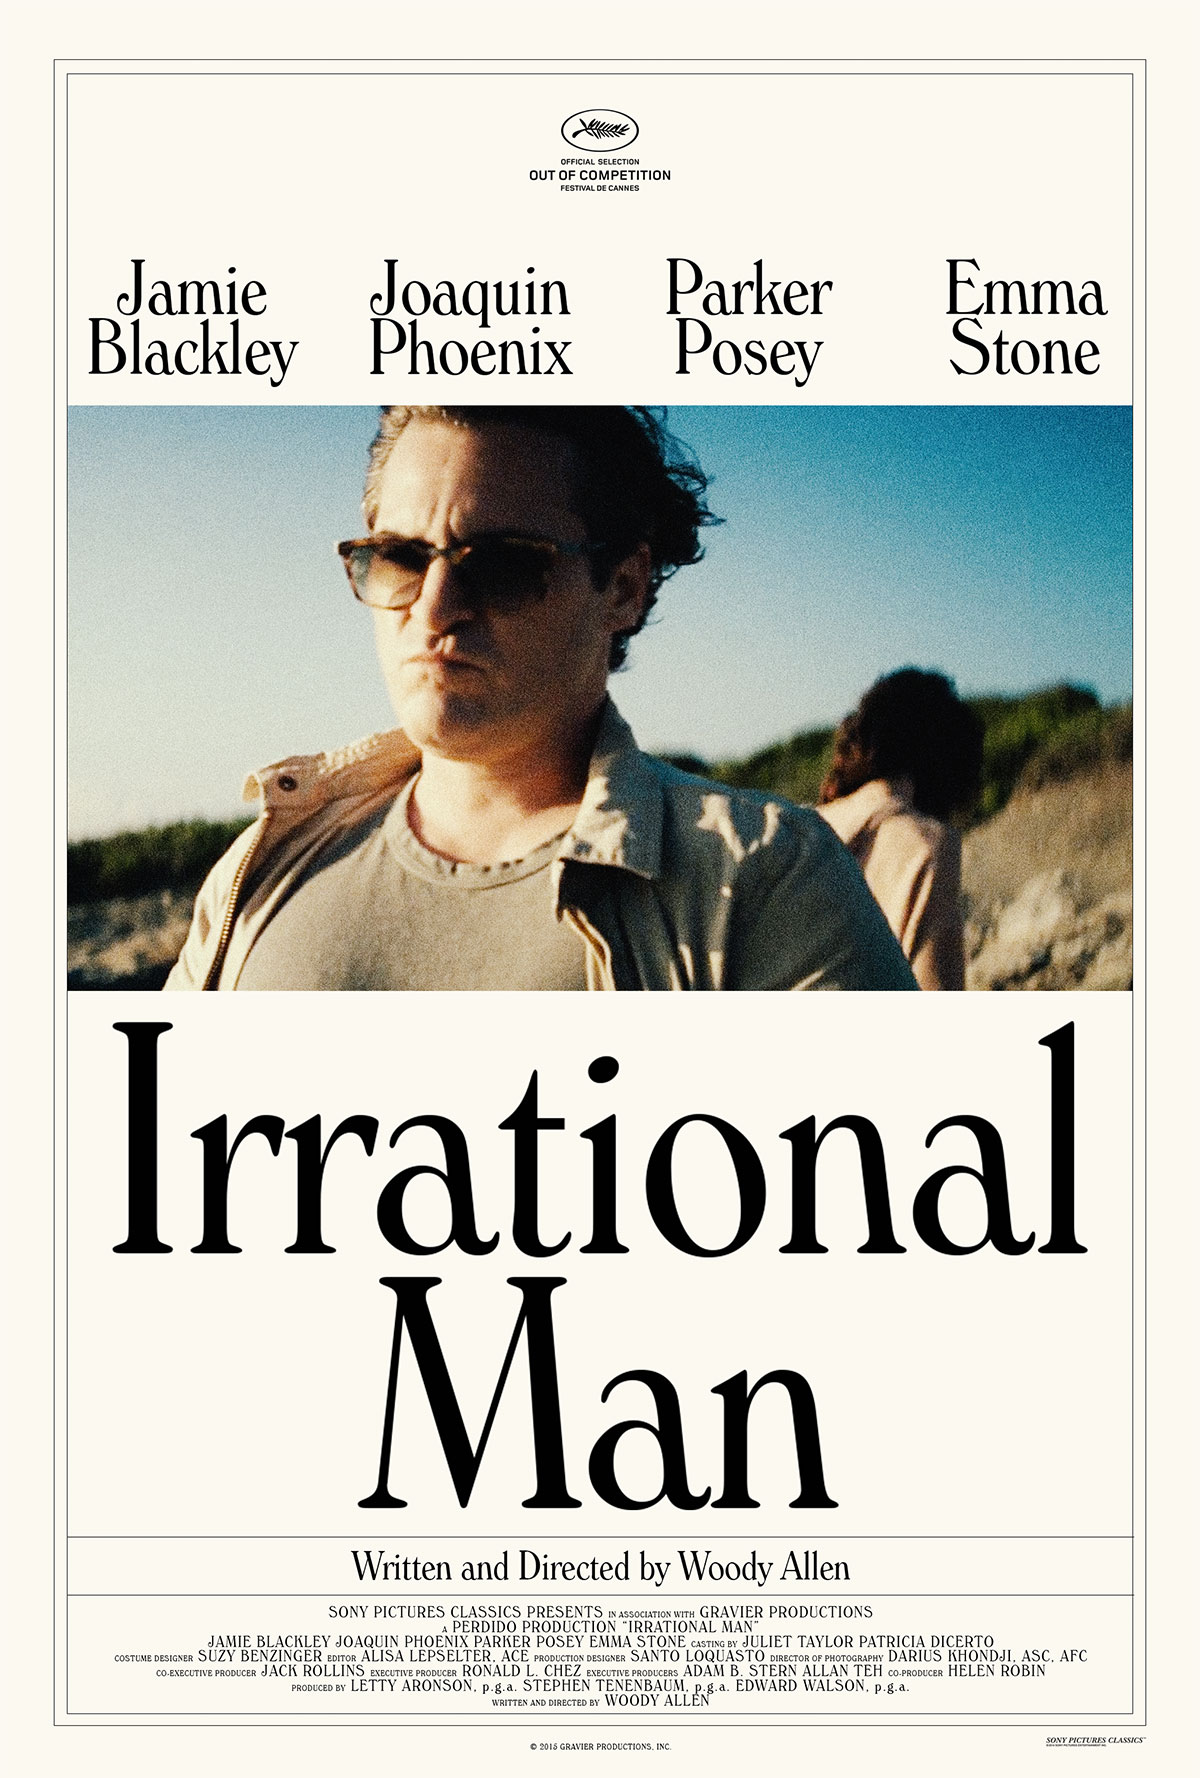 High Resolution Wallpaper | Irrational Man 1200x1778 px